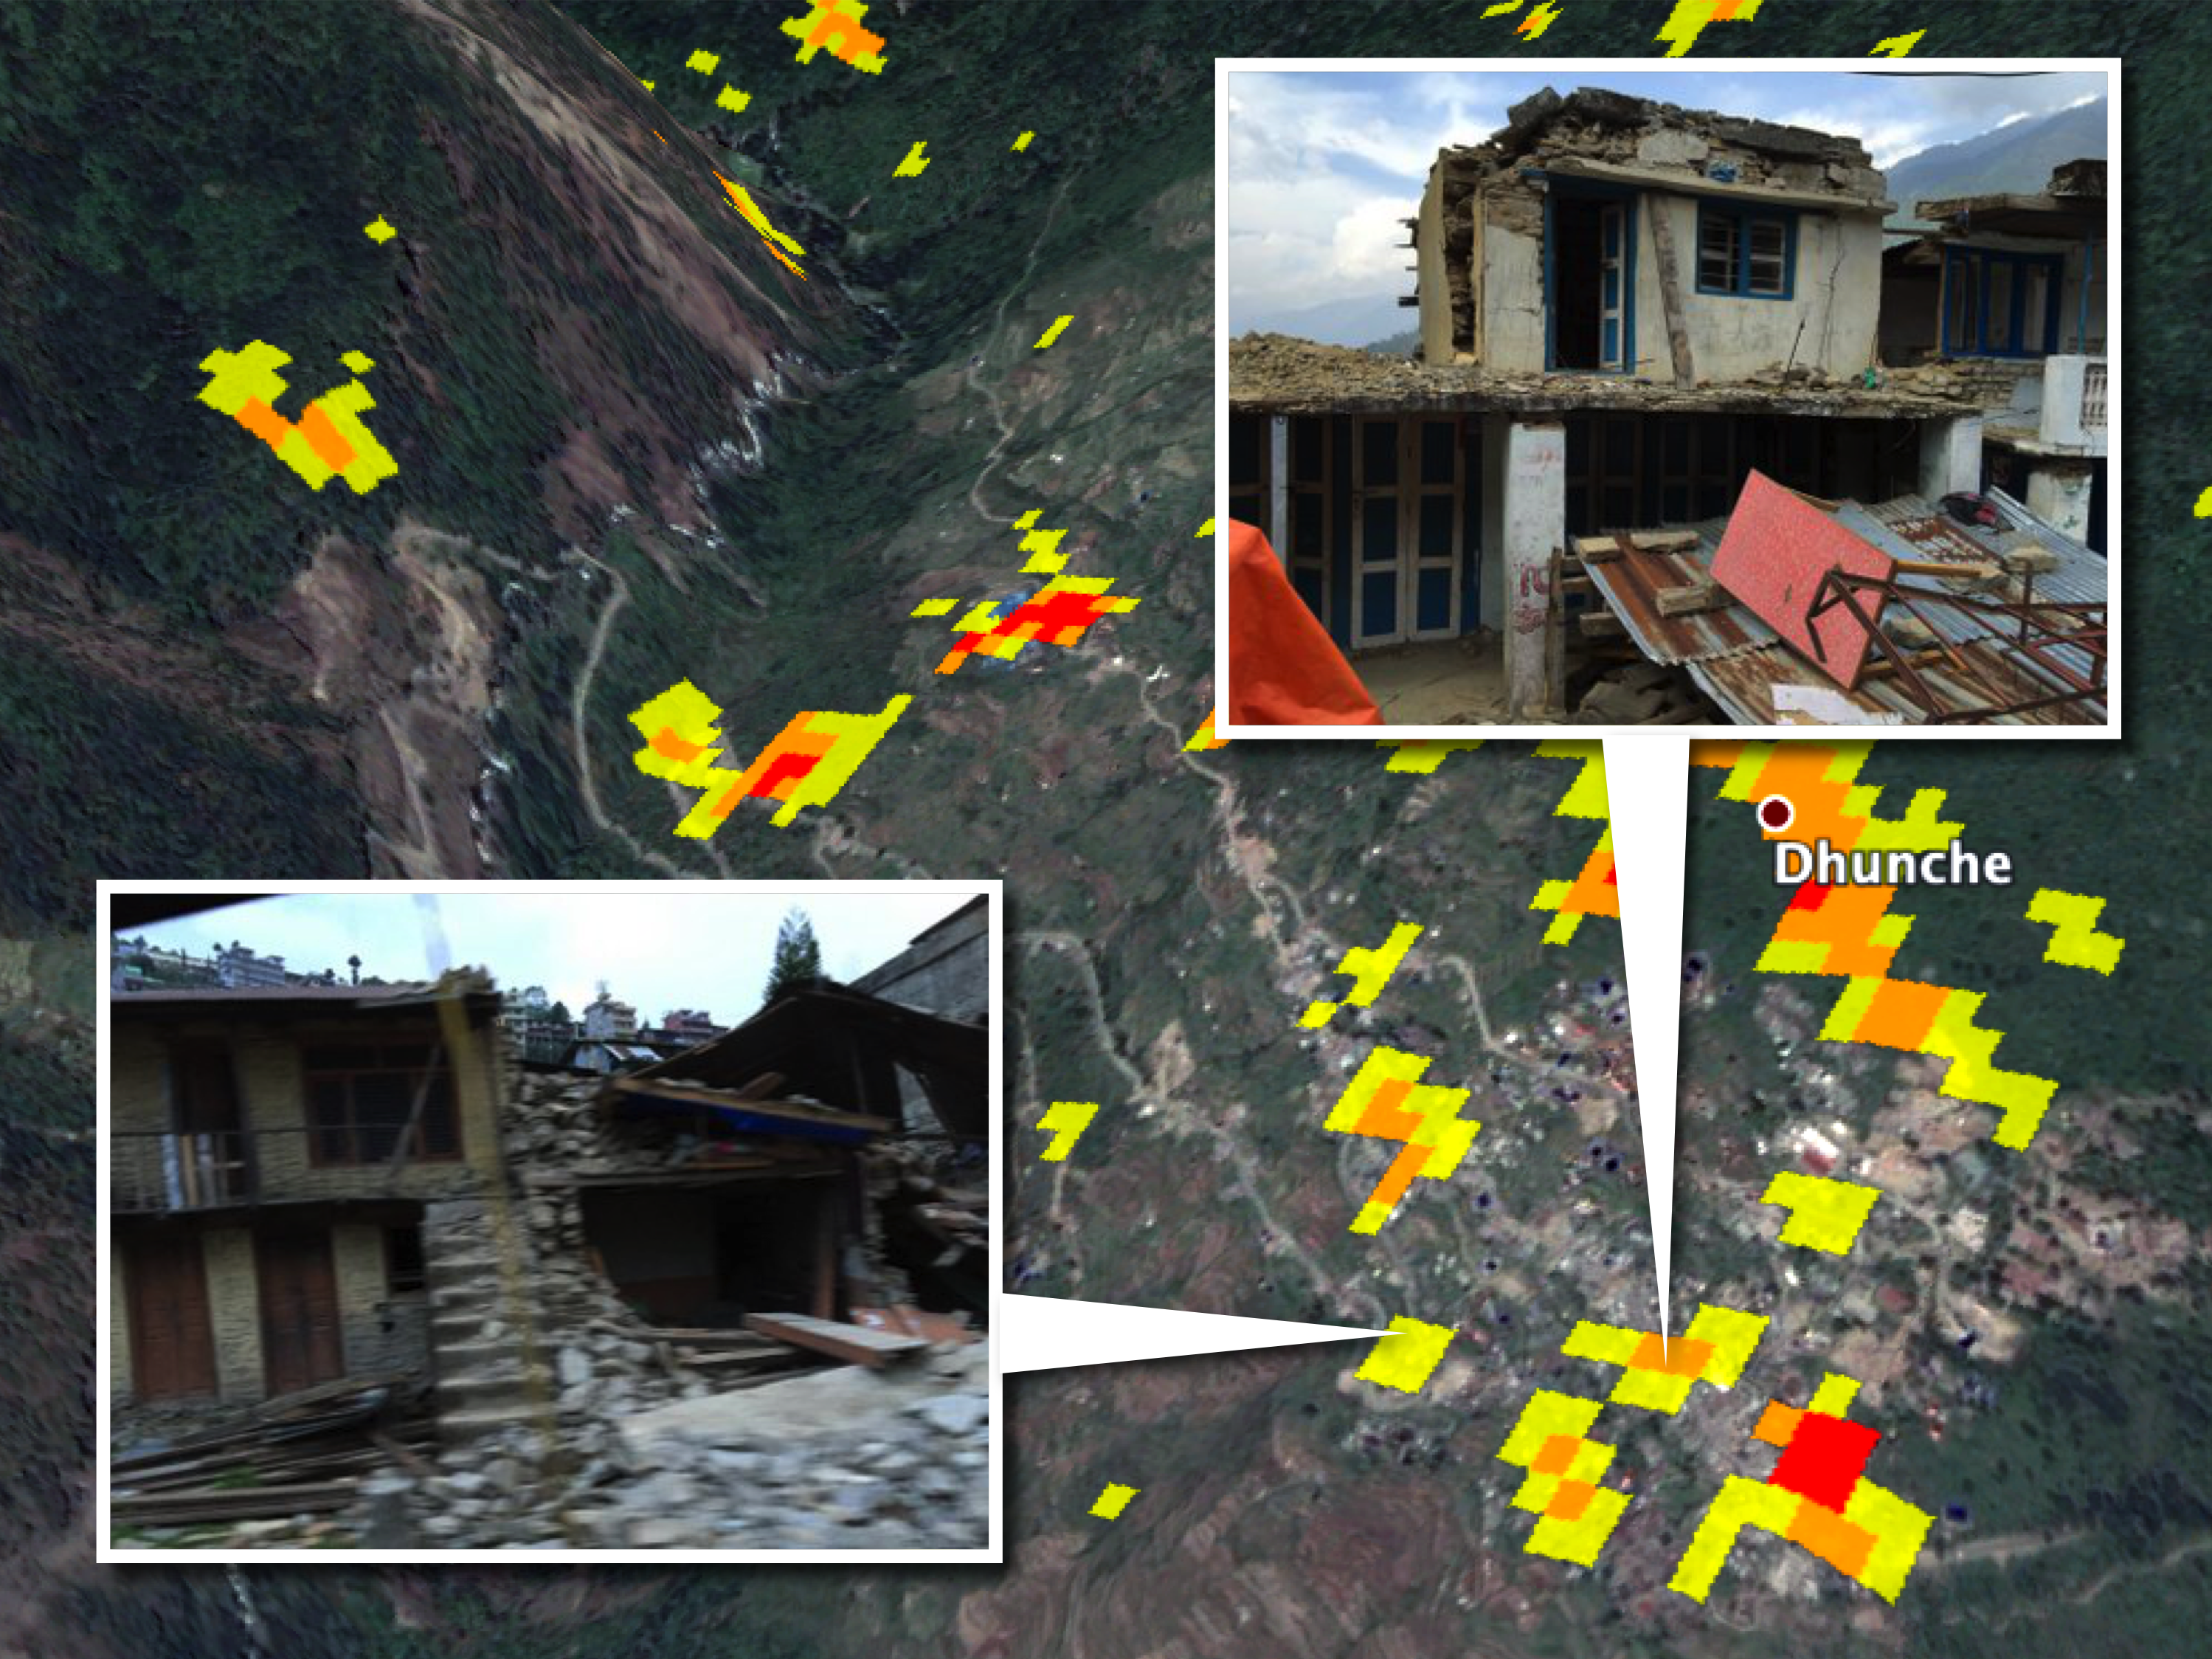 Photos Of Dhunche Nepal